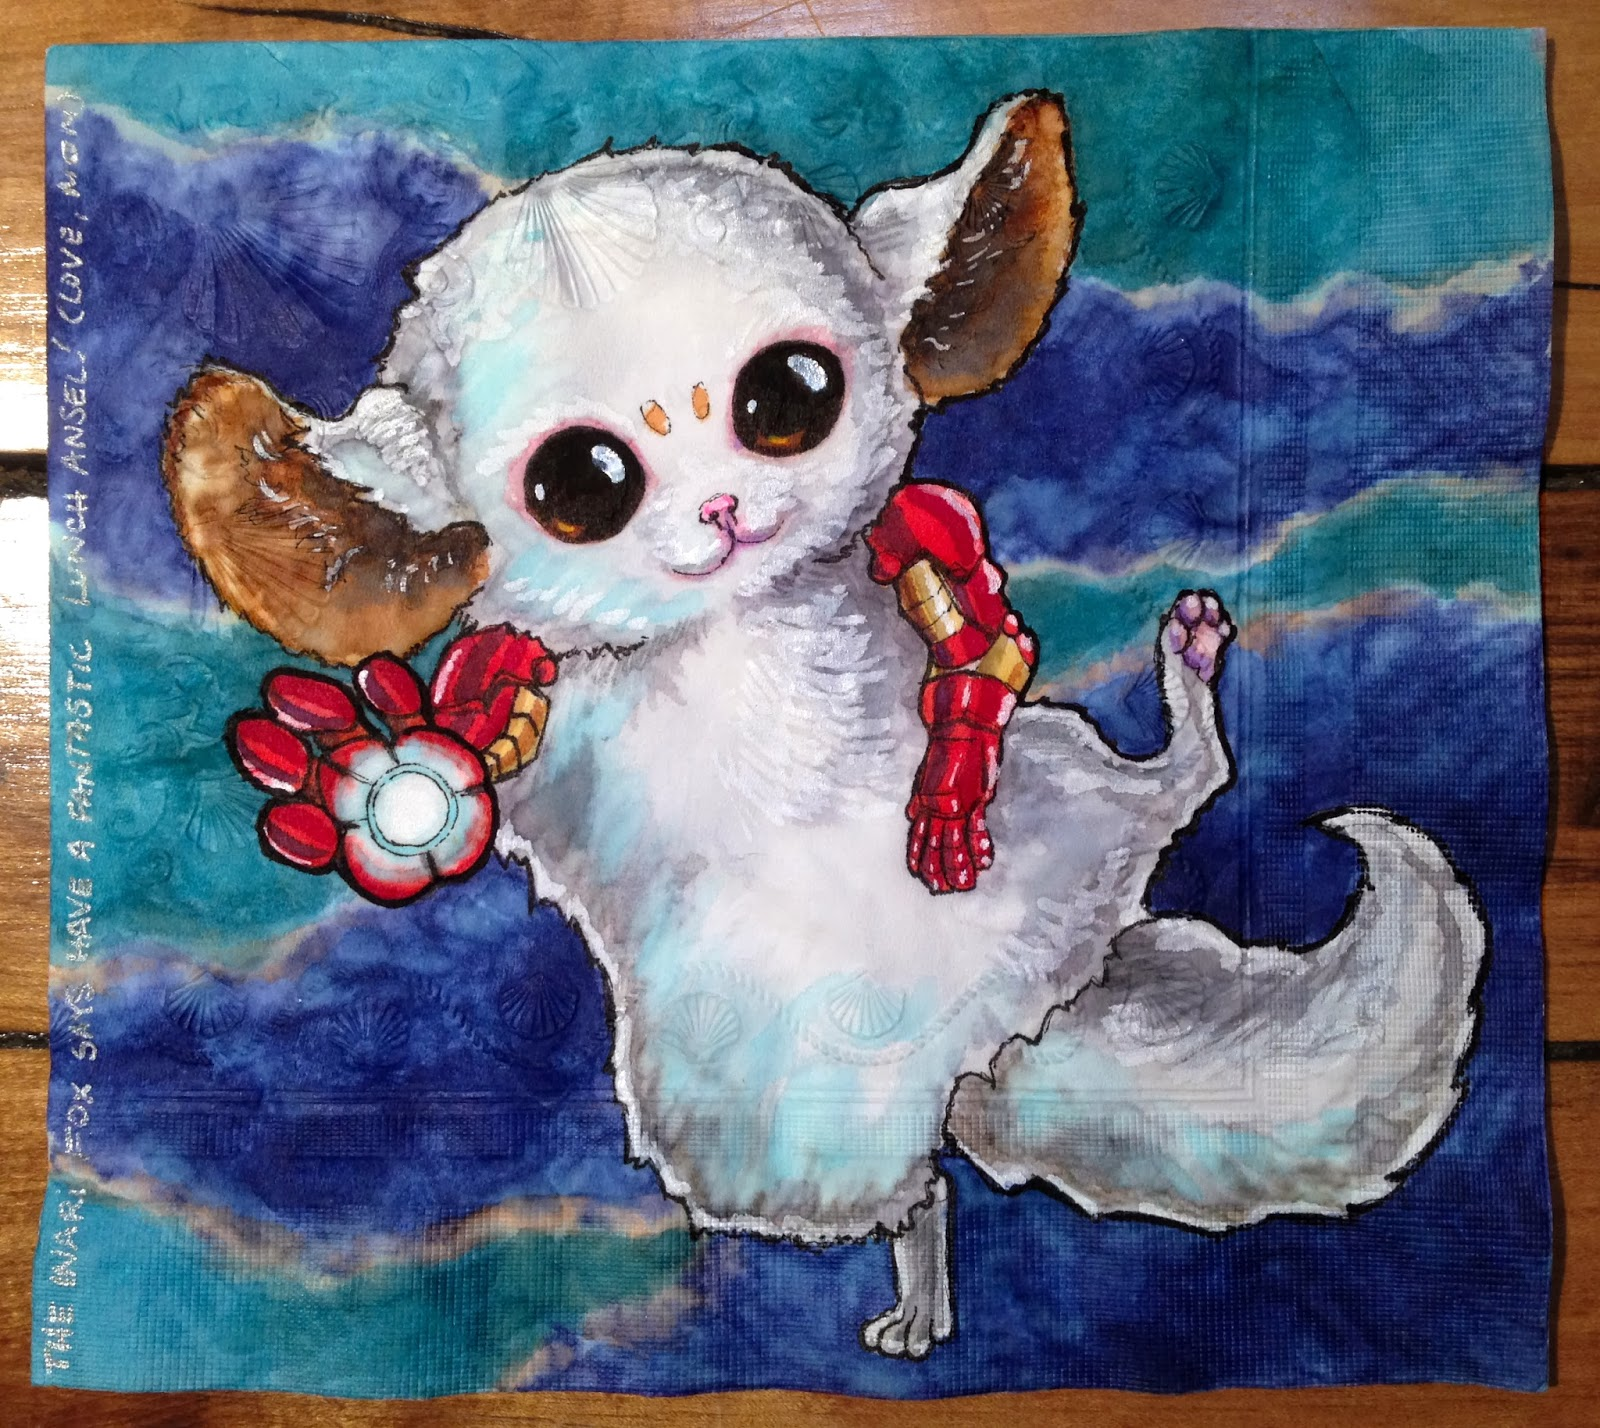 Daily Napkins Inari Fox With Iron Man Arms And Palm Repulsor